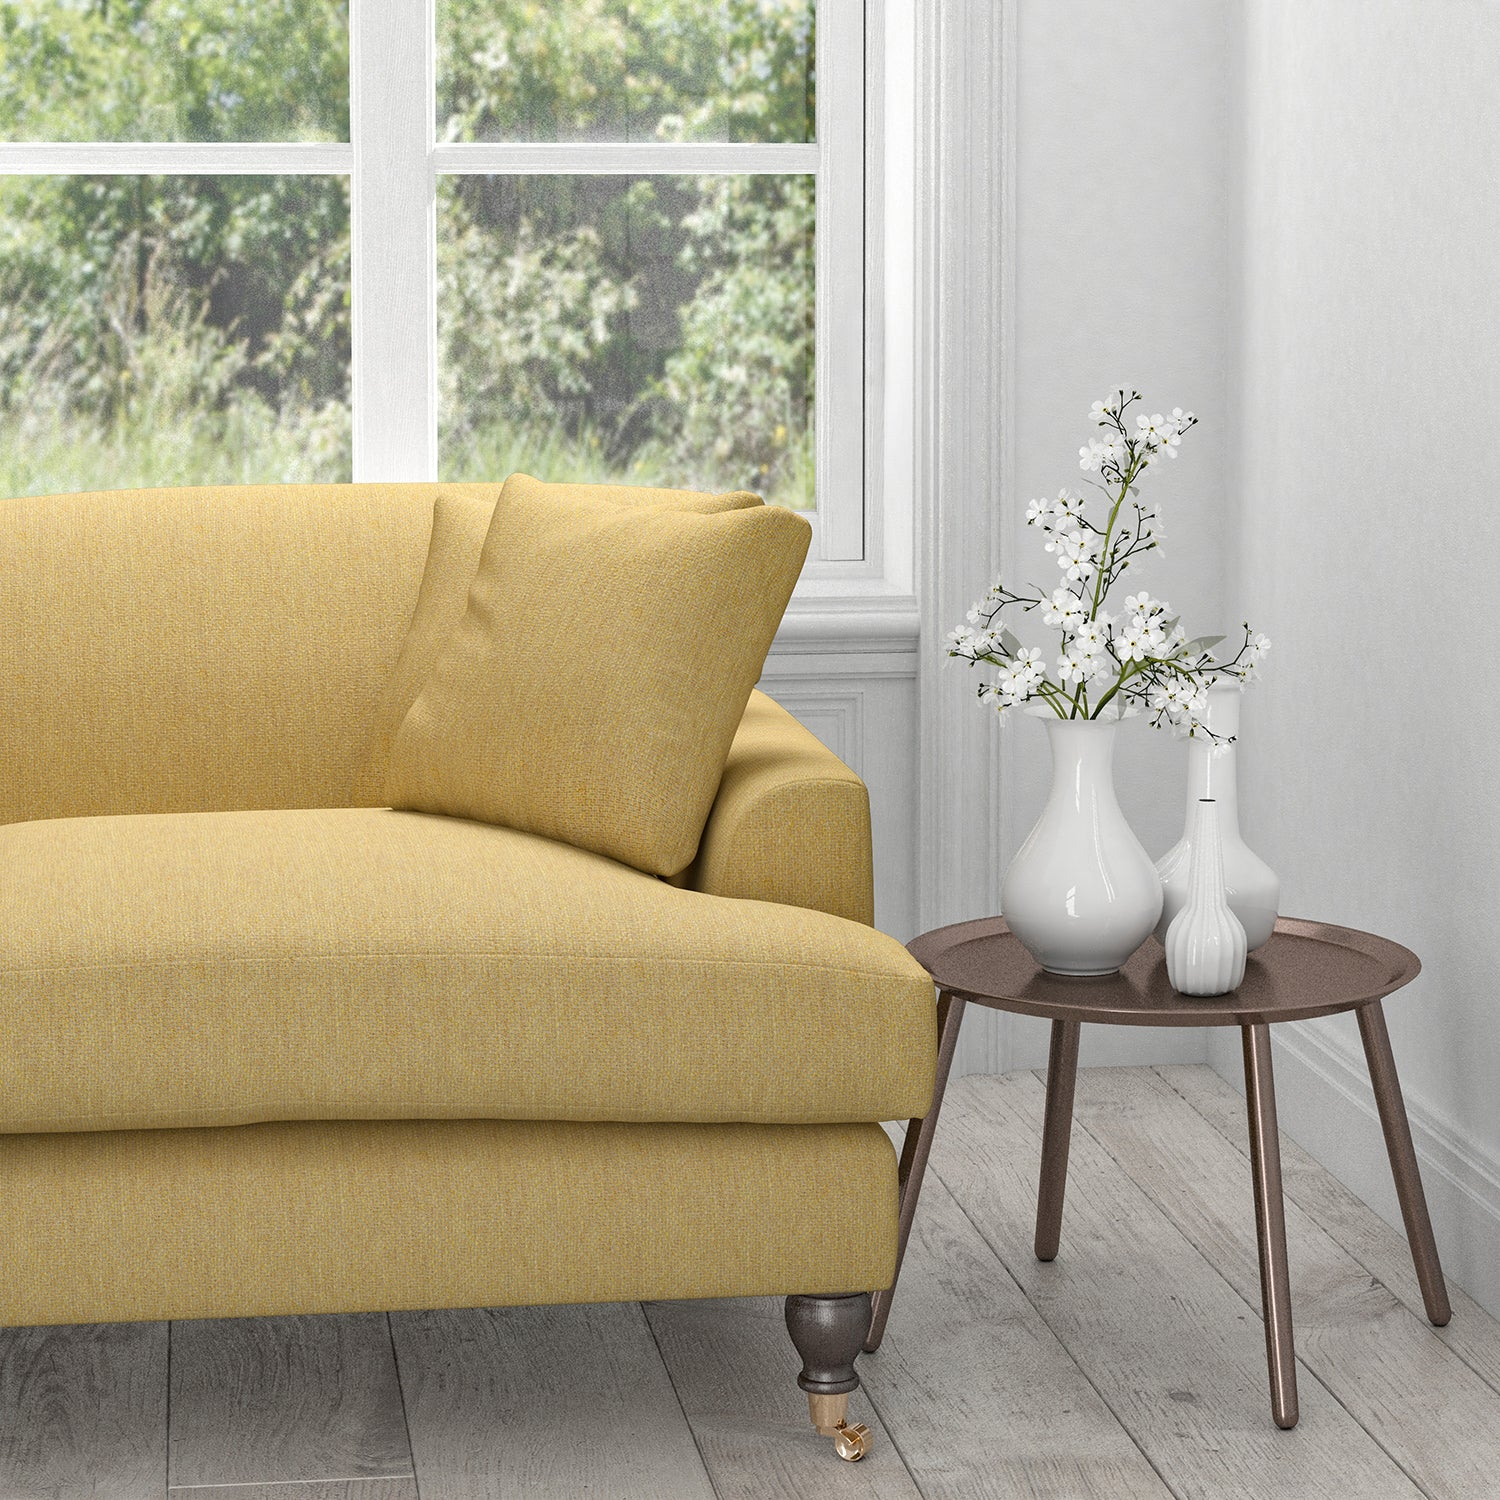 Sofa in a light yellow fabric with neutral woven geometric design